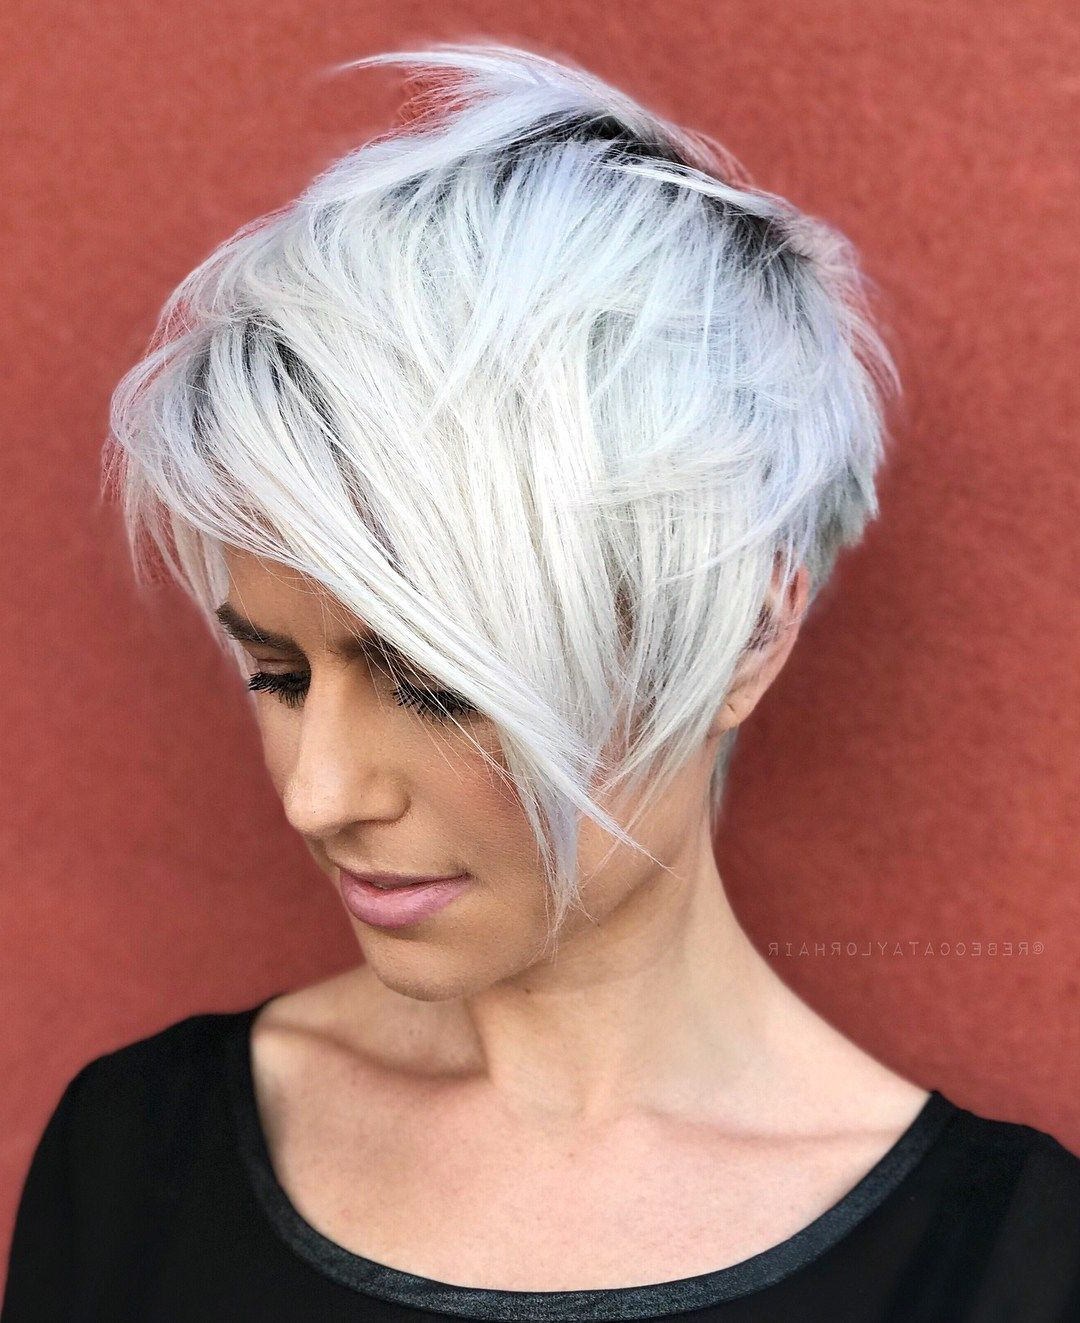 70 Overwhelming Ideas For Short Choppy Haircuts | Short Hair With Regard To Long Pixie Haircuts With Angled Layers (View 3 of 20)